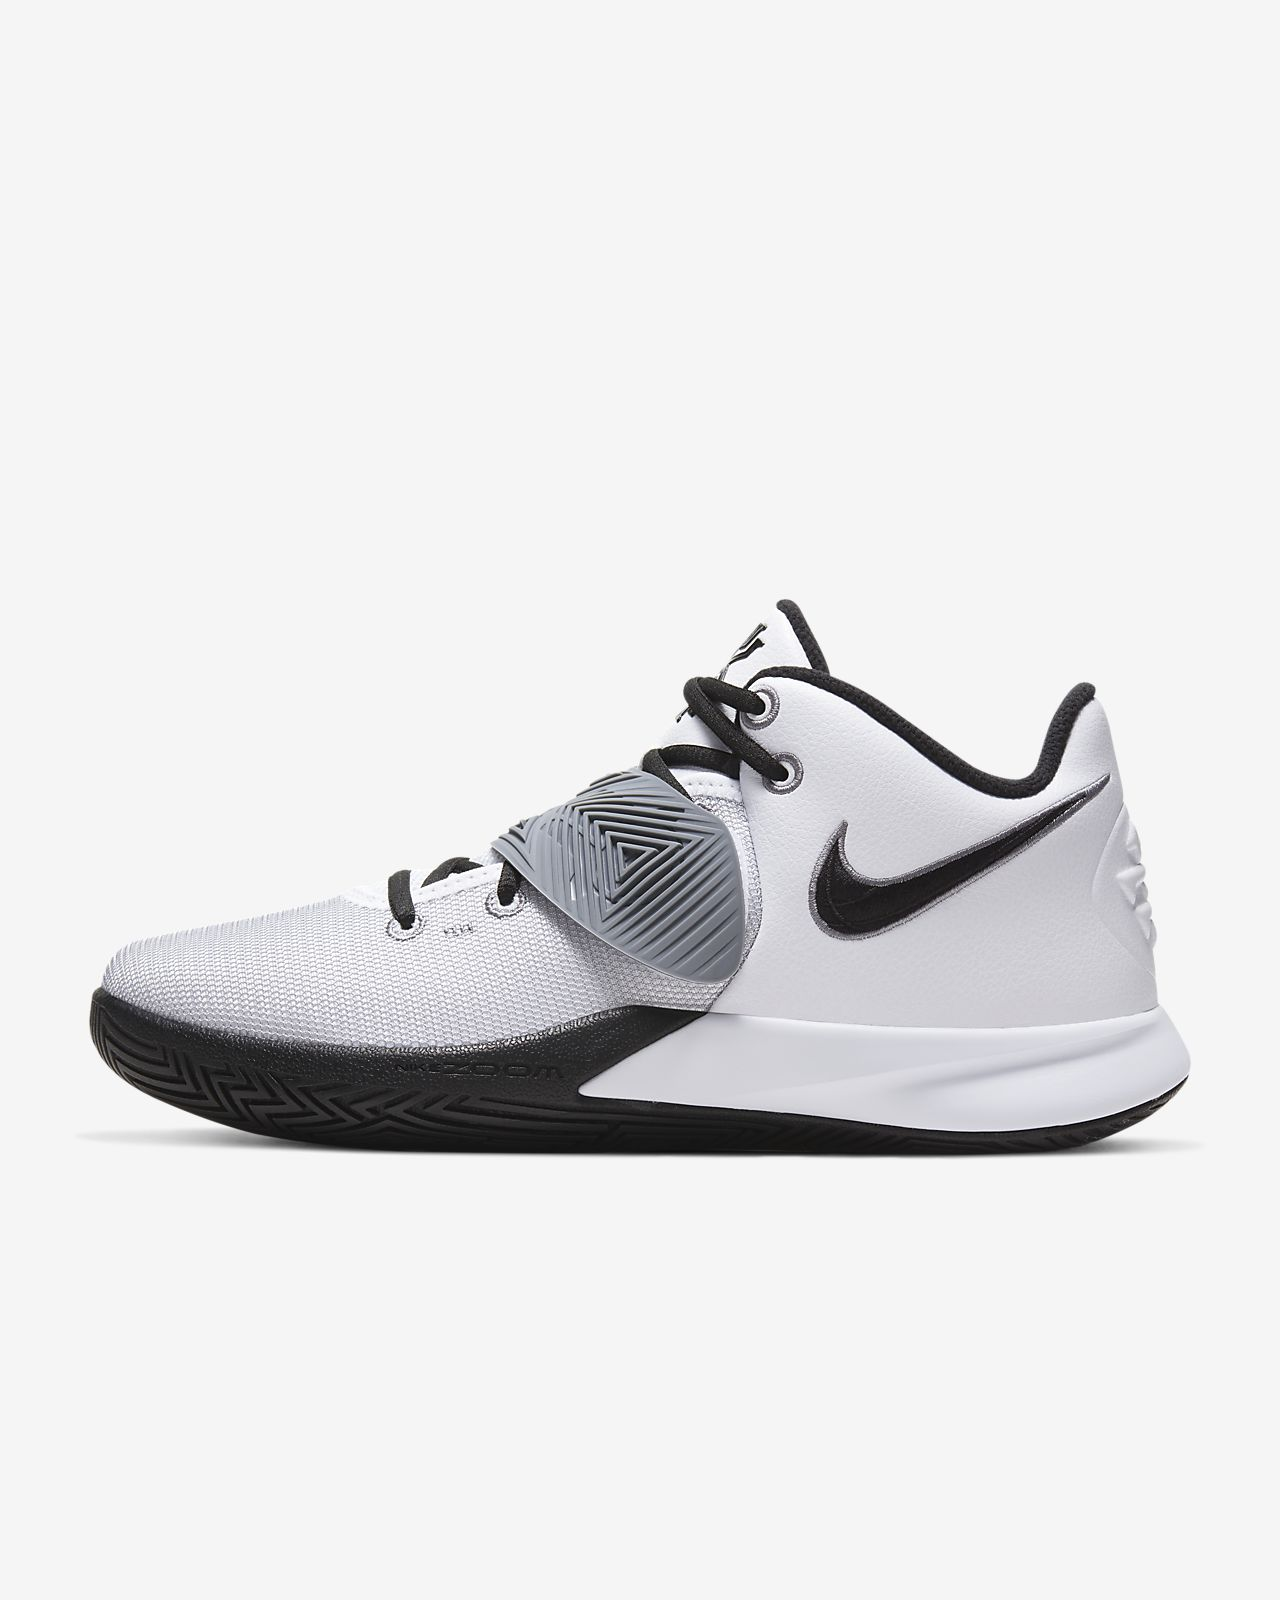 Kyrie Flytrap 3 Basketball Shoe